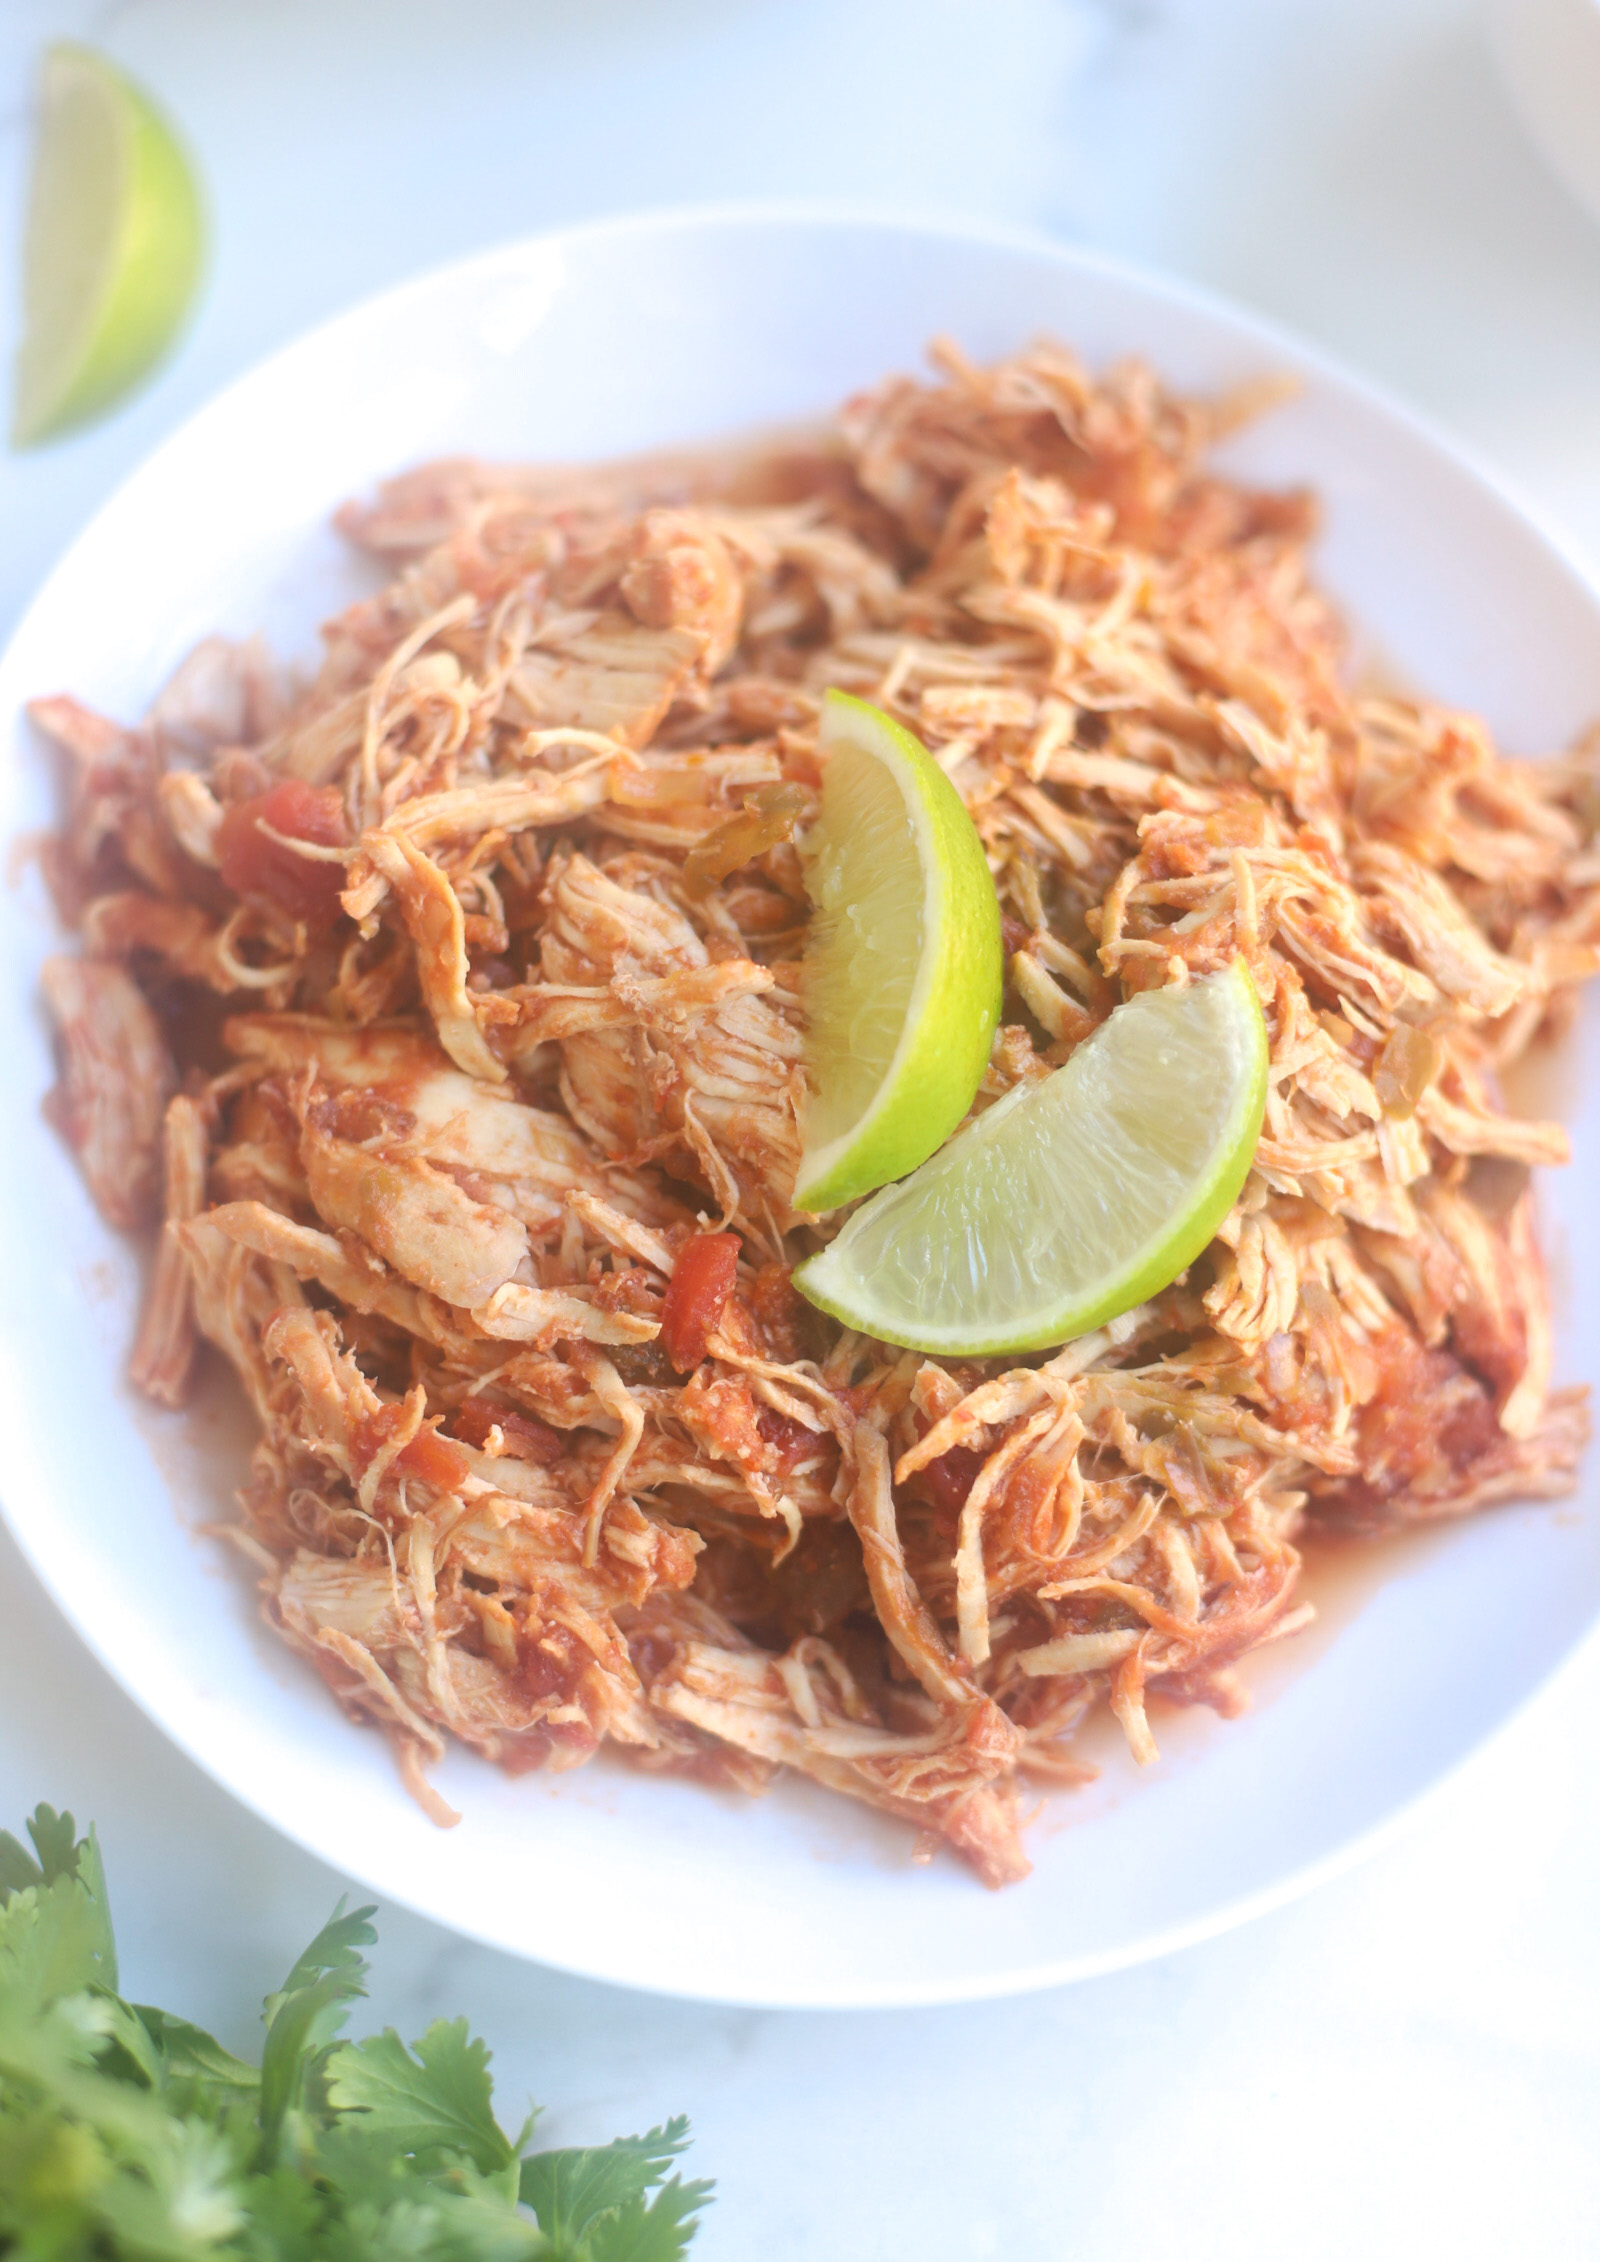 Crockpot Salsa Chicken for the Easiest Delicious Slow Cooker Chicken Tacos - GLITTERINC.COM